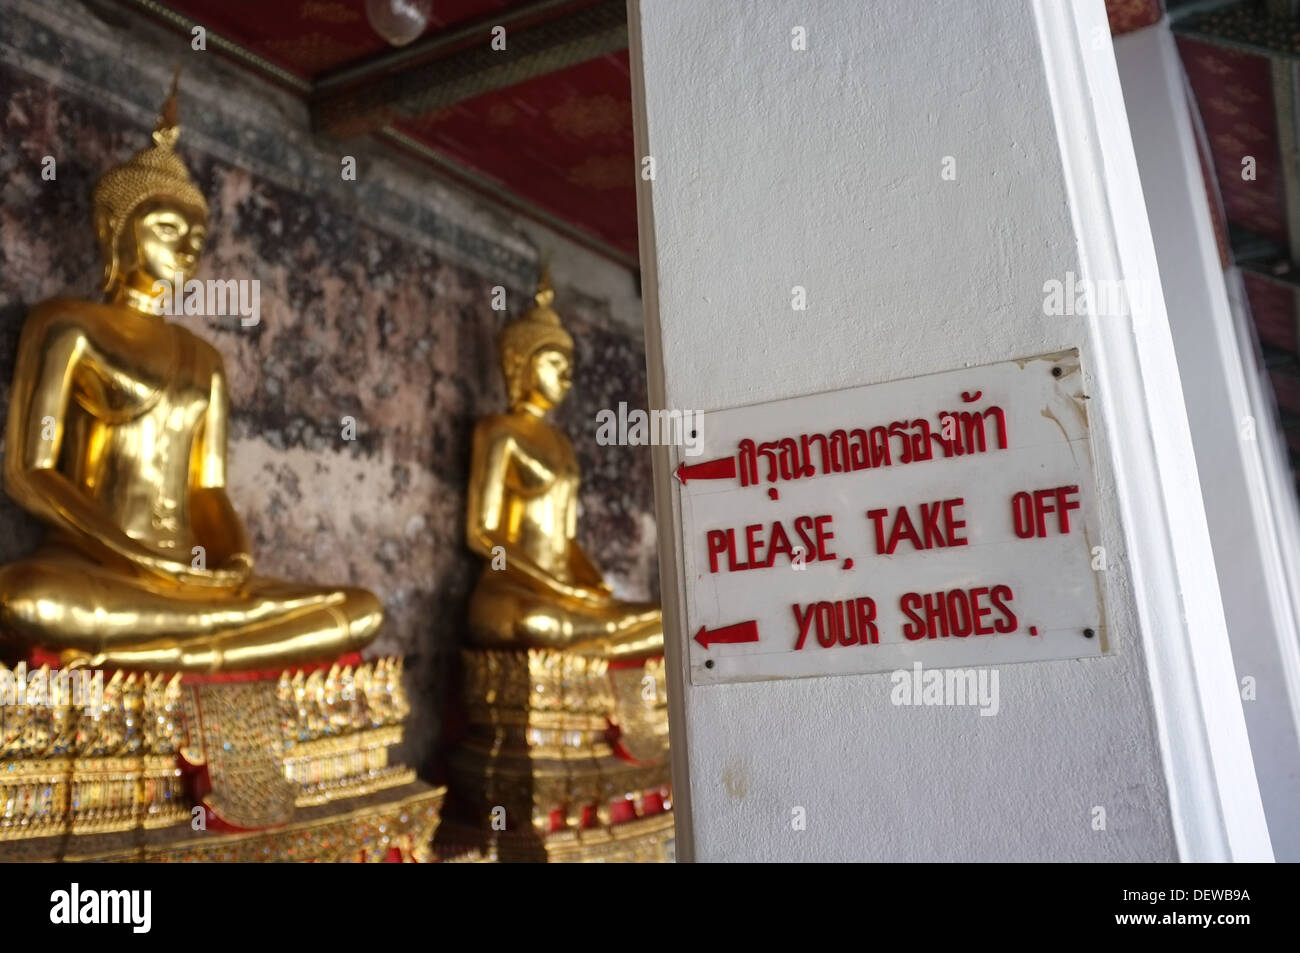 """Please take off your shoes"" sign at Buddhist temple in Bangkok, Thailand Stock Photo"